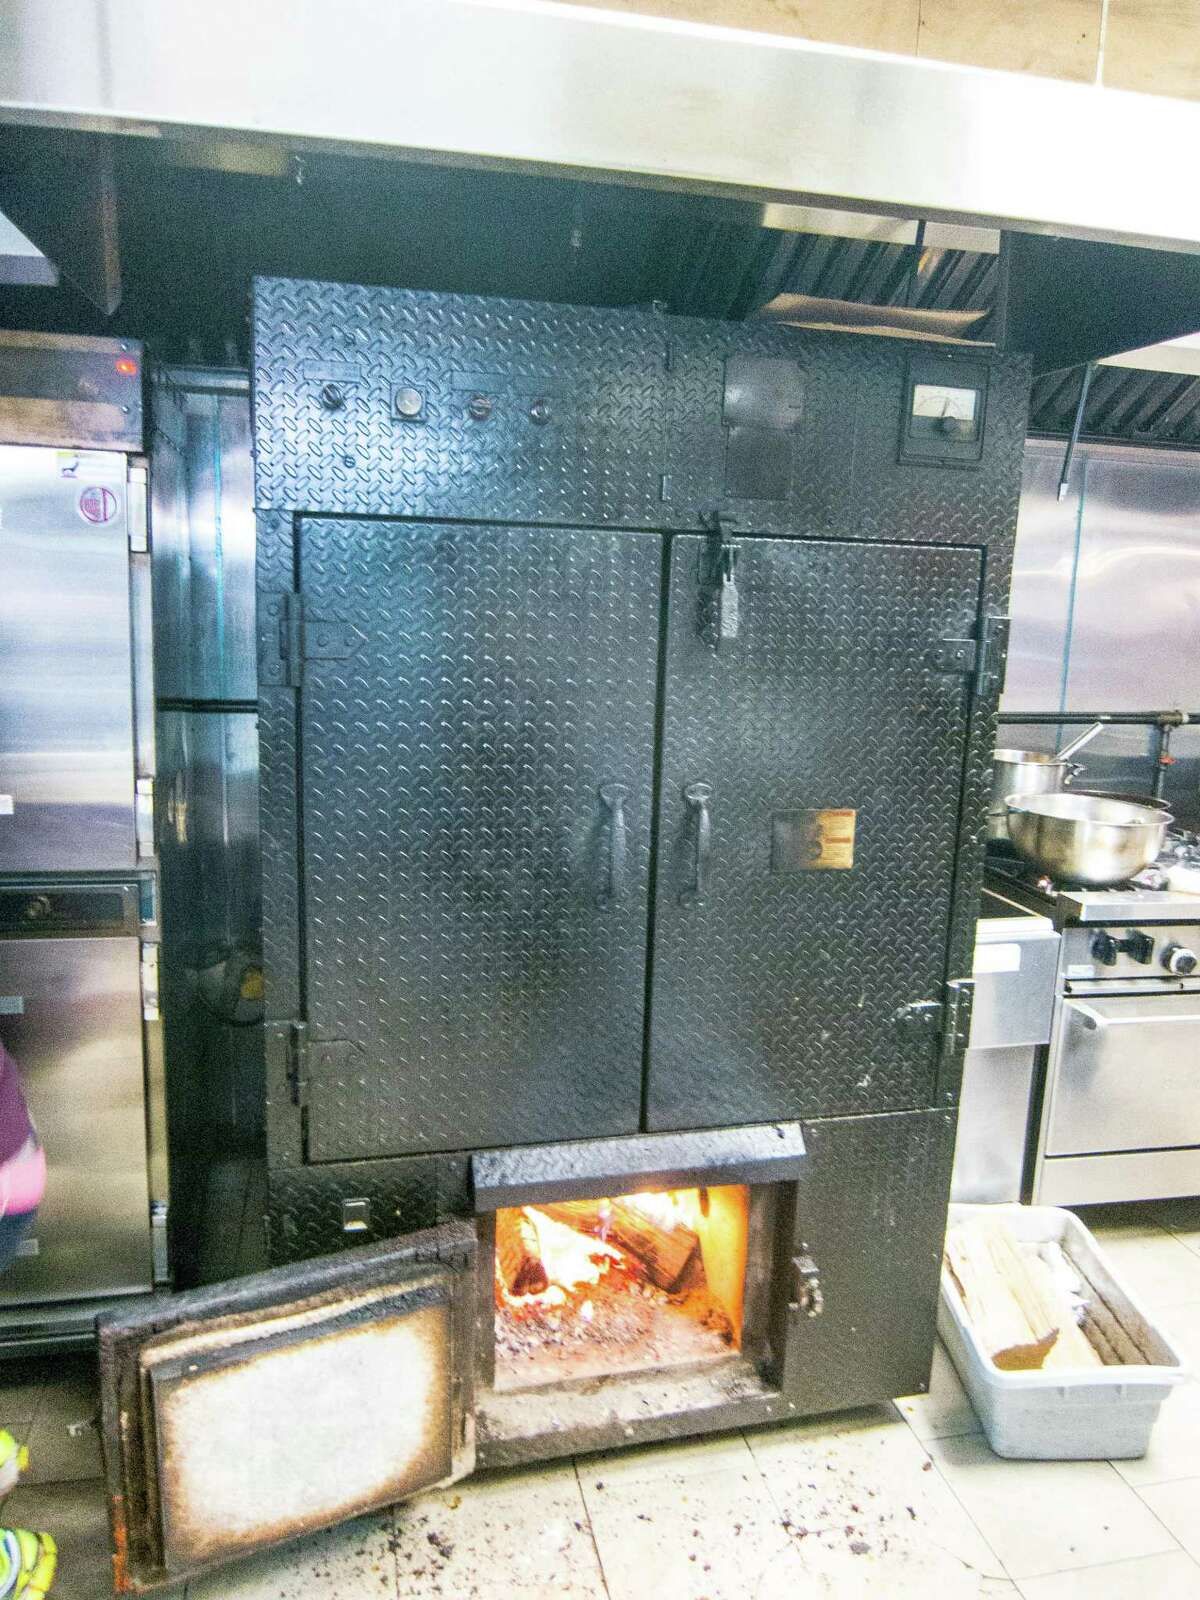 For places like Izzy's Brooklyn Smokehouse in New York, vertical smokers are often the only option.